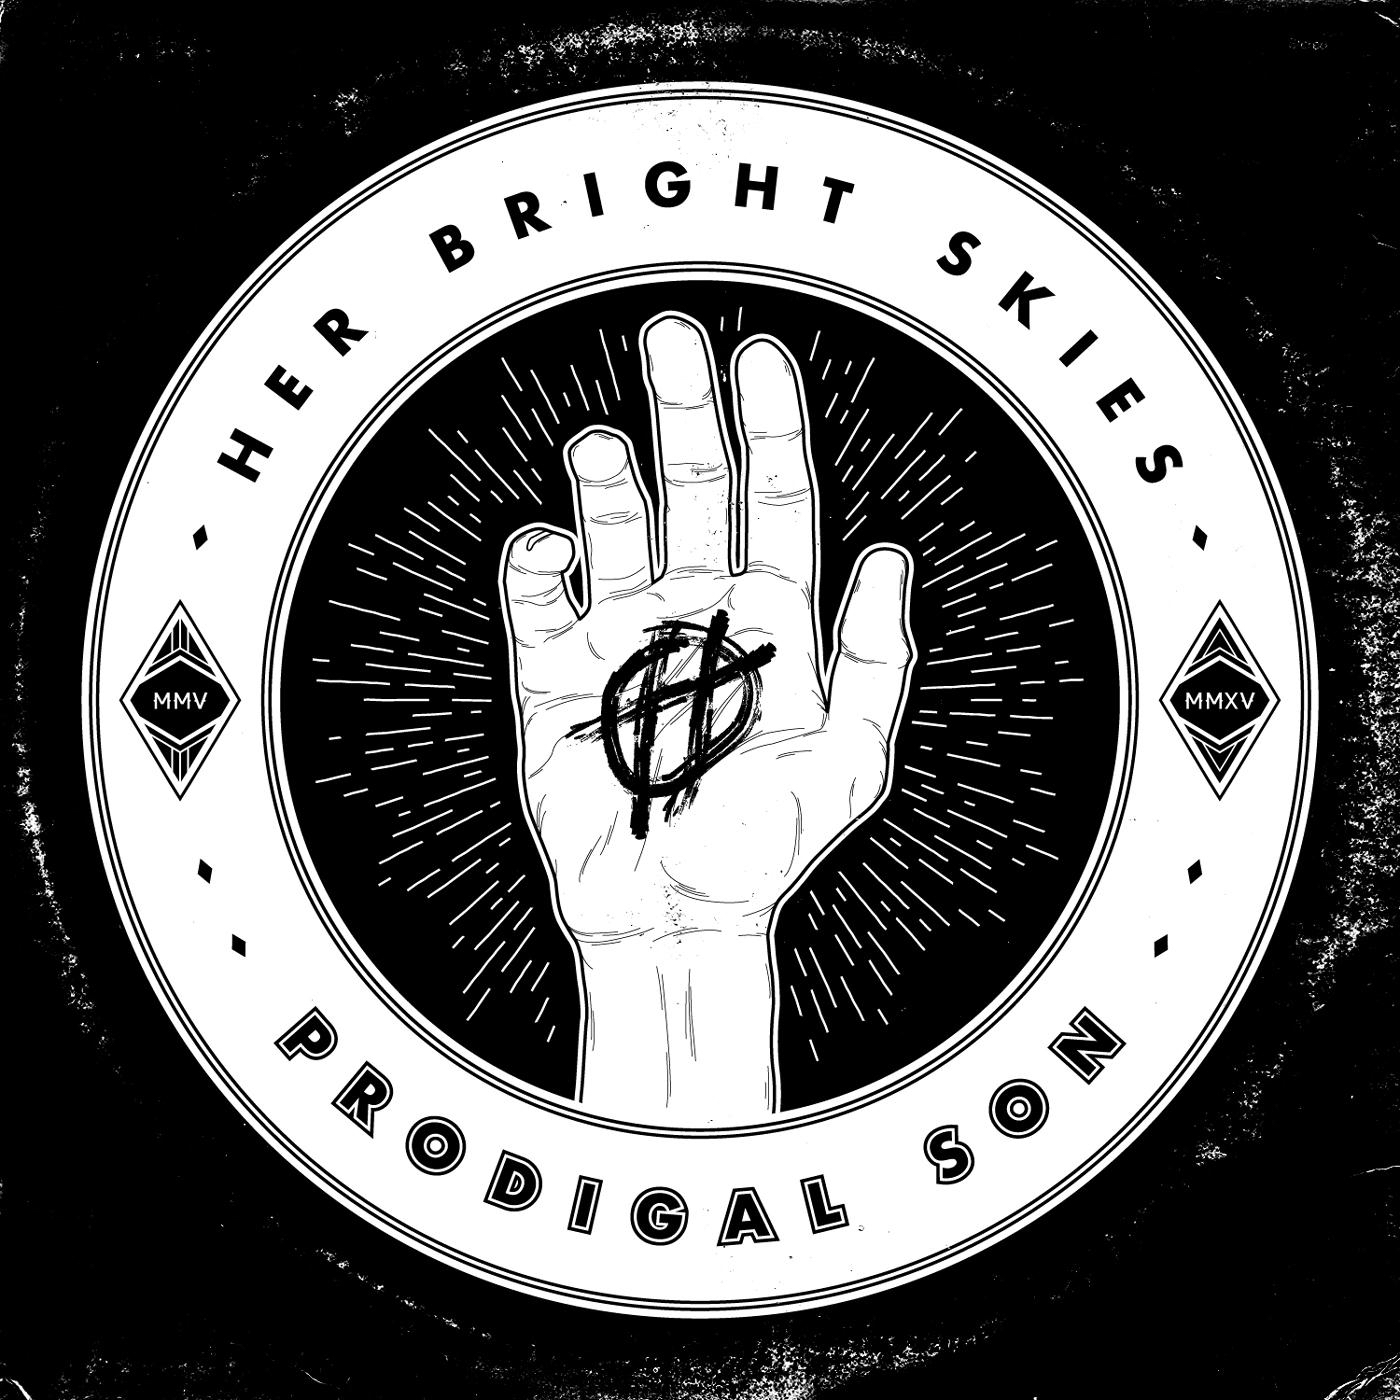 Her Bright Skies - Prodigal Son [EP] (2015)